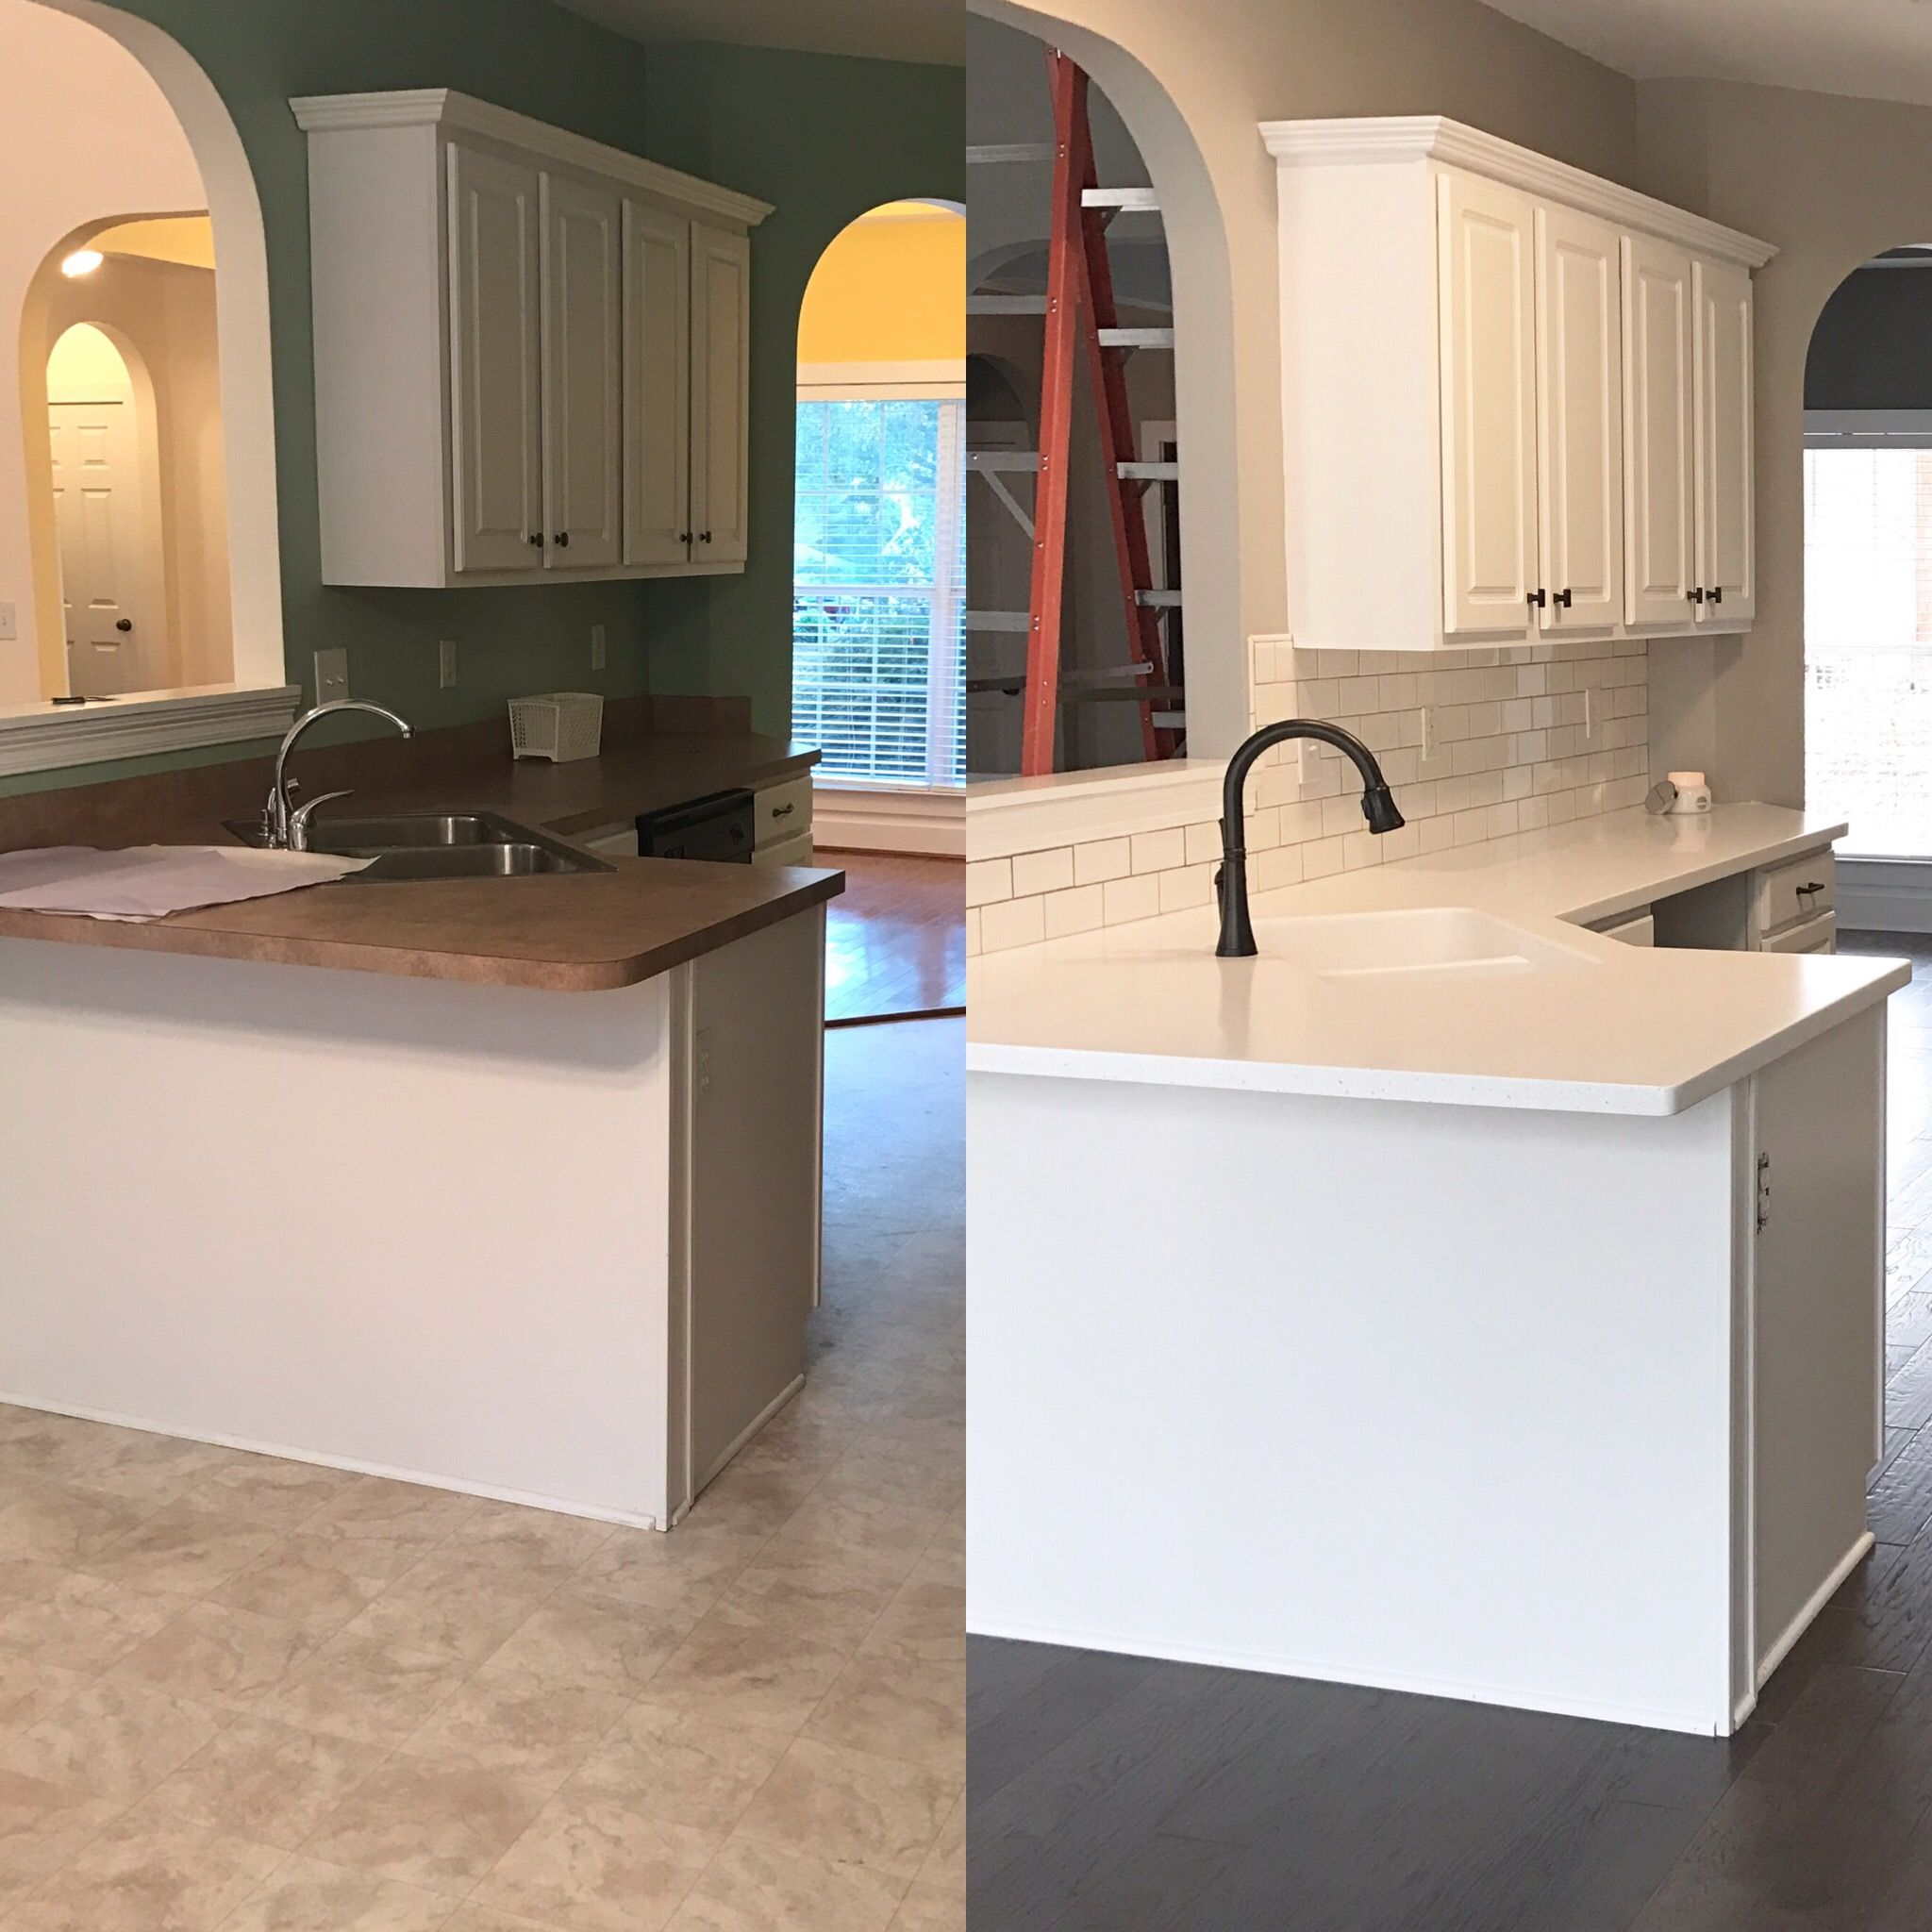 Lg Himacs Solid Surface Counter Top In Ice Queen White Subway Tile With Mapei Silver Grout